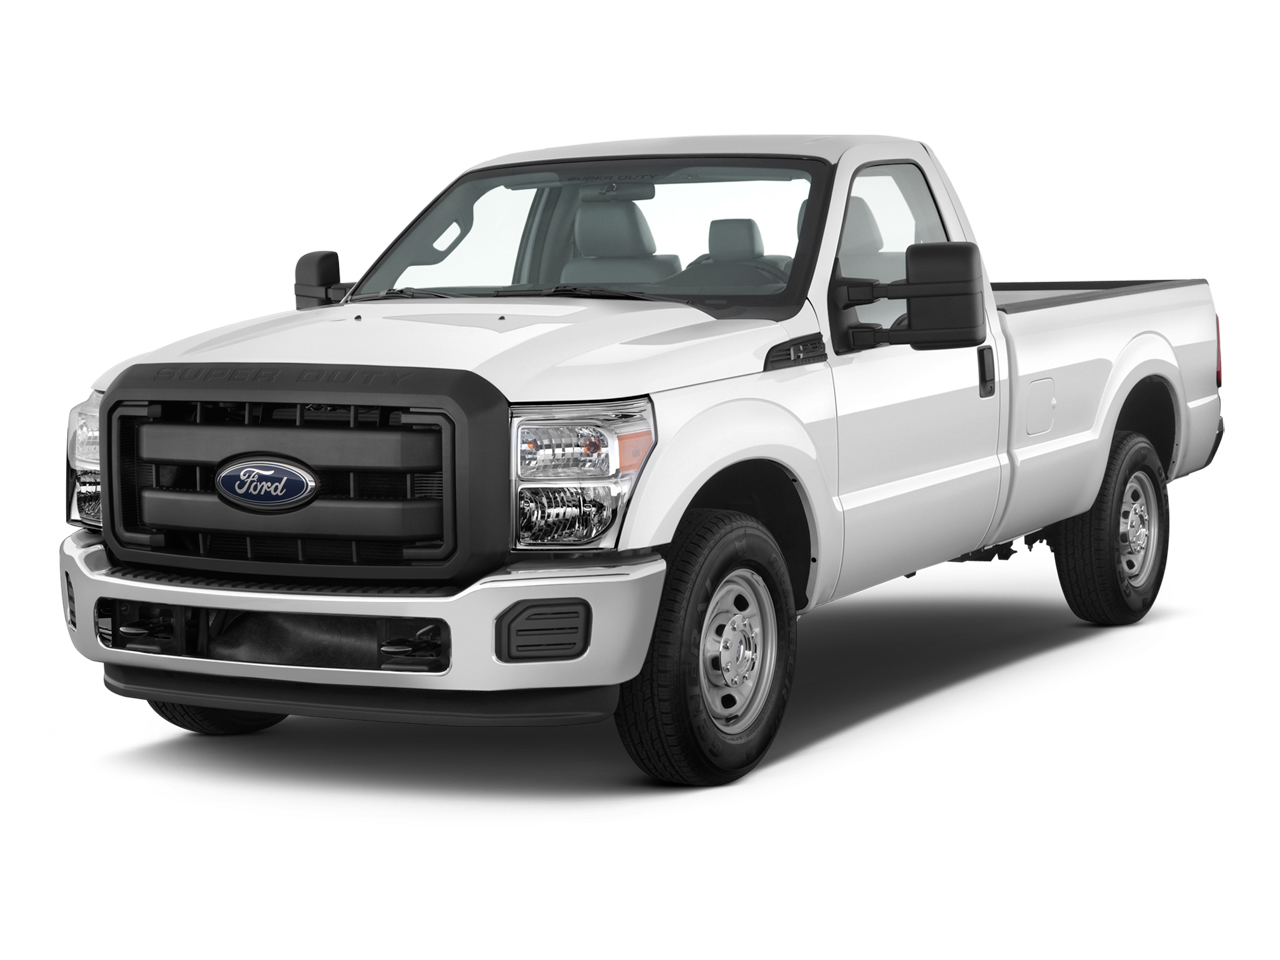 2013 ford super duty f 250 review ratings specs prices. Black Bedroom Furniture Sets. Home Design Ideas